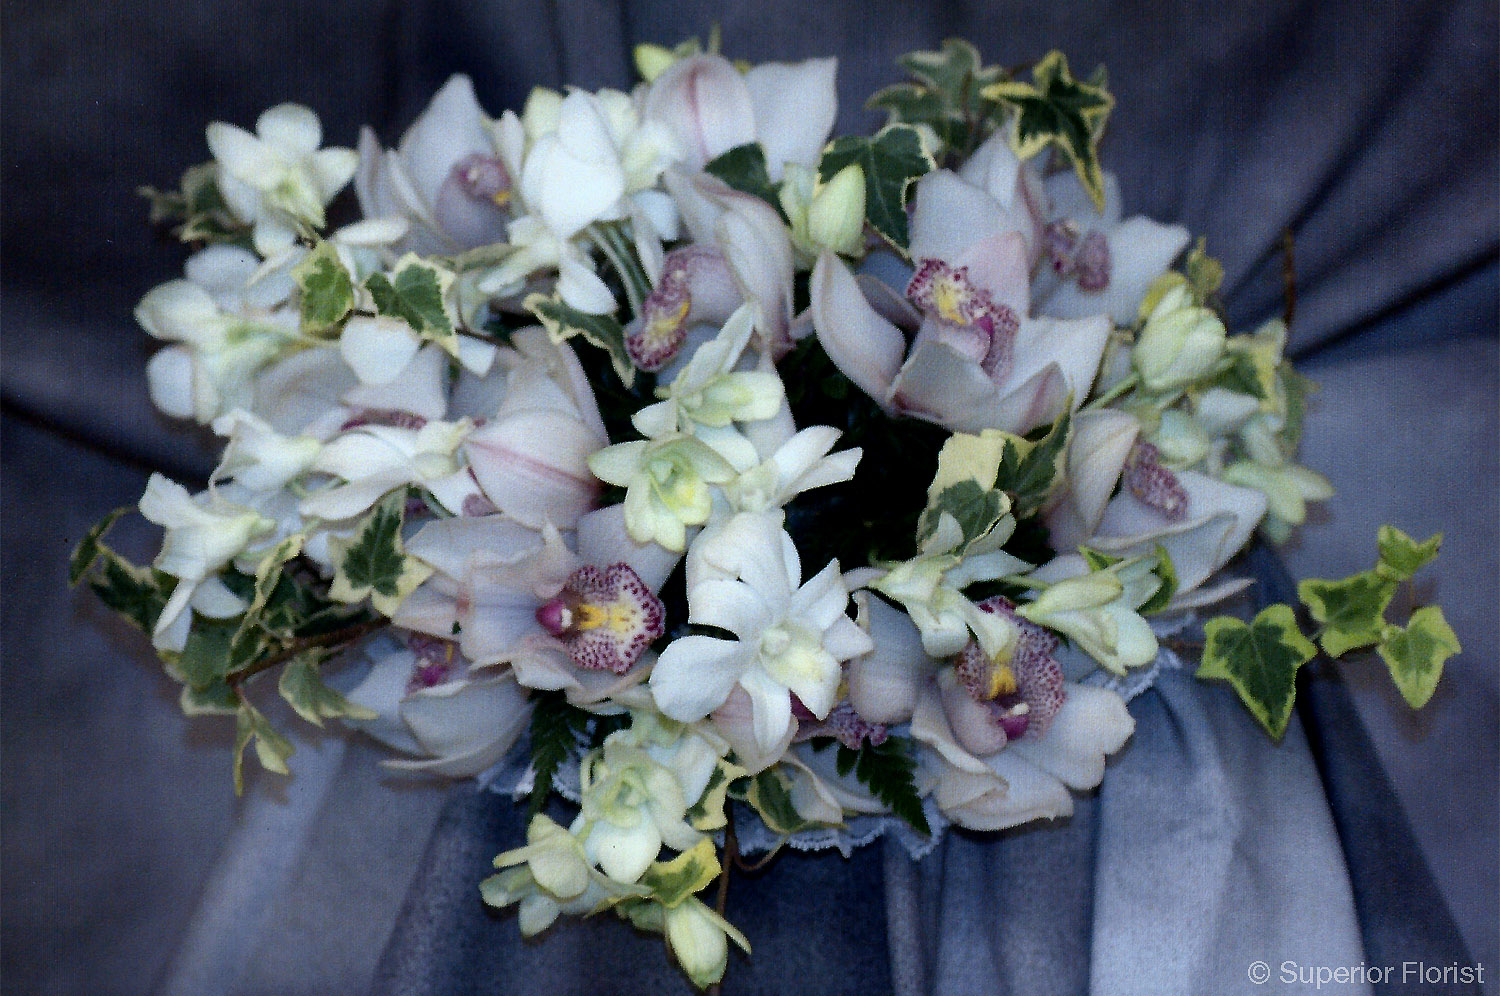 Superior Florist – Weddings – Personal Flowers: Hand tied bouquet of Cymbidiums, Dendrobium and ivy.